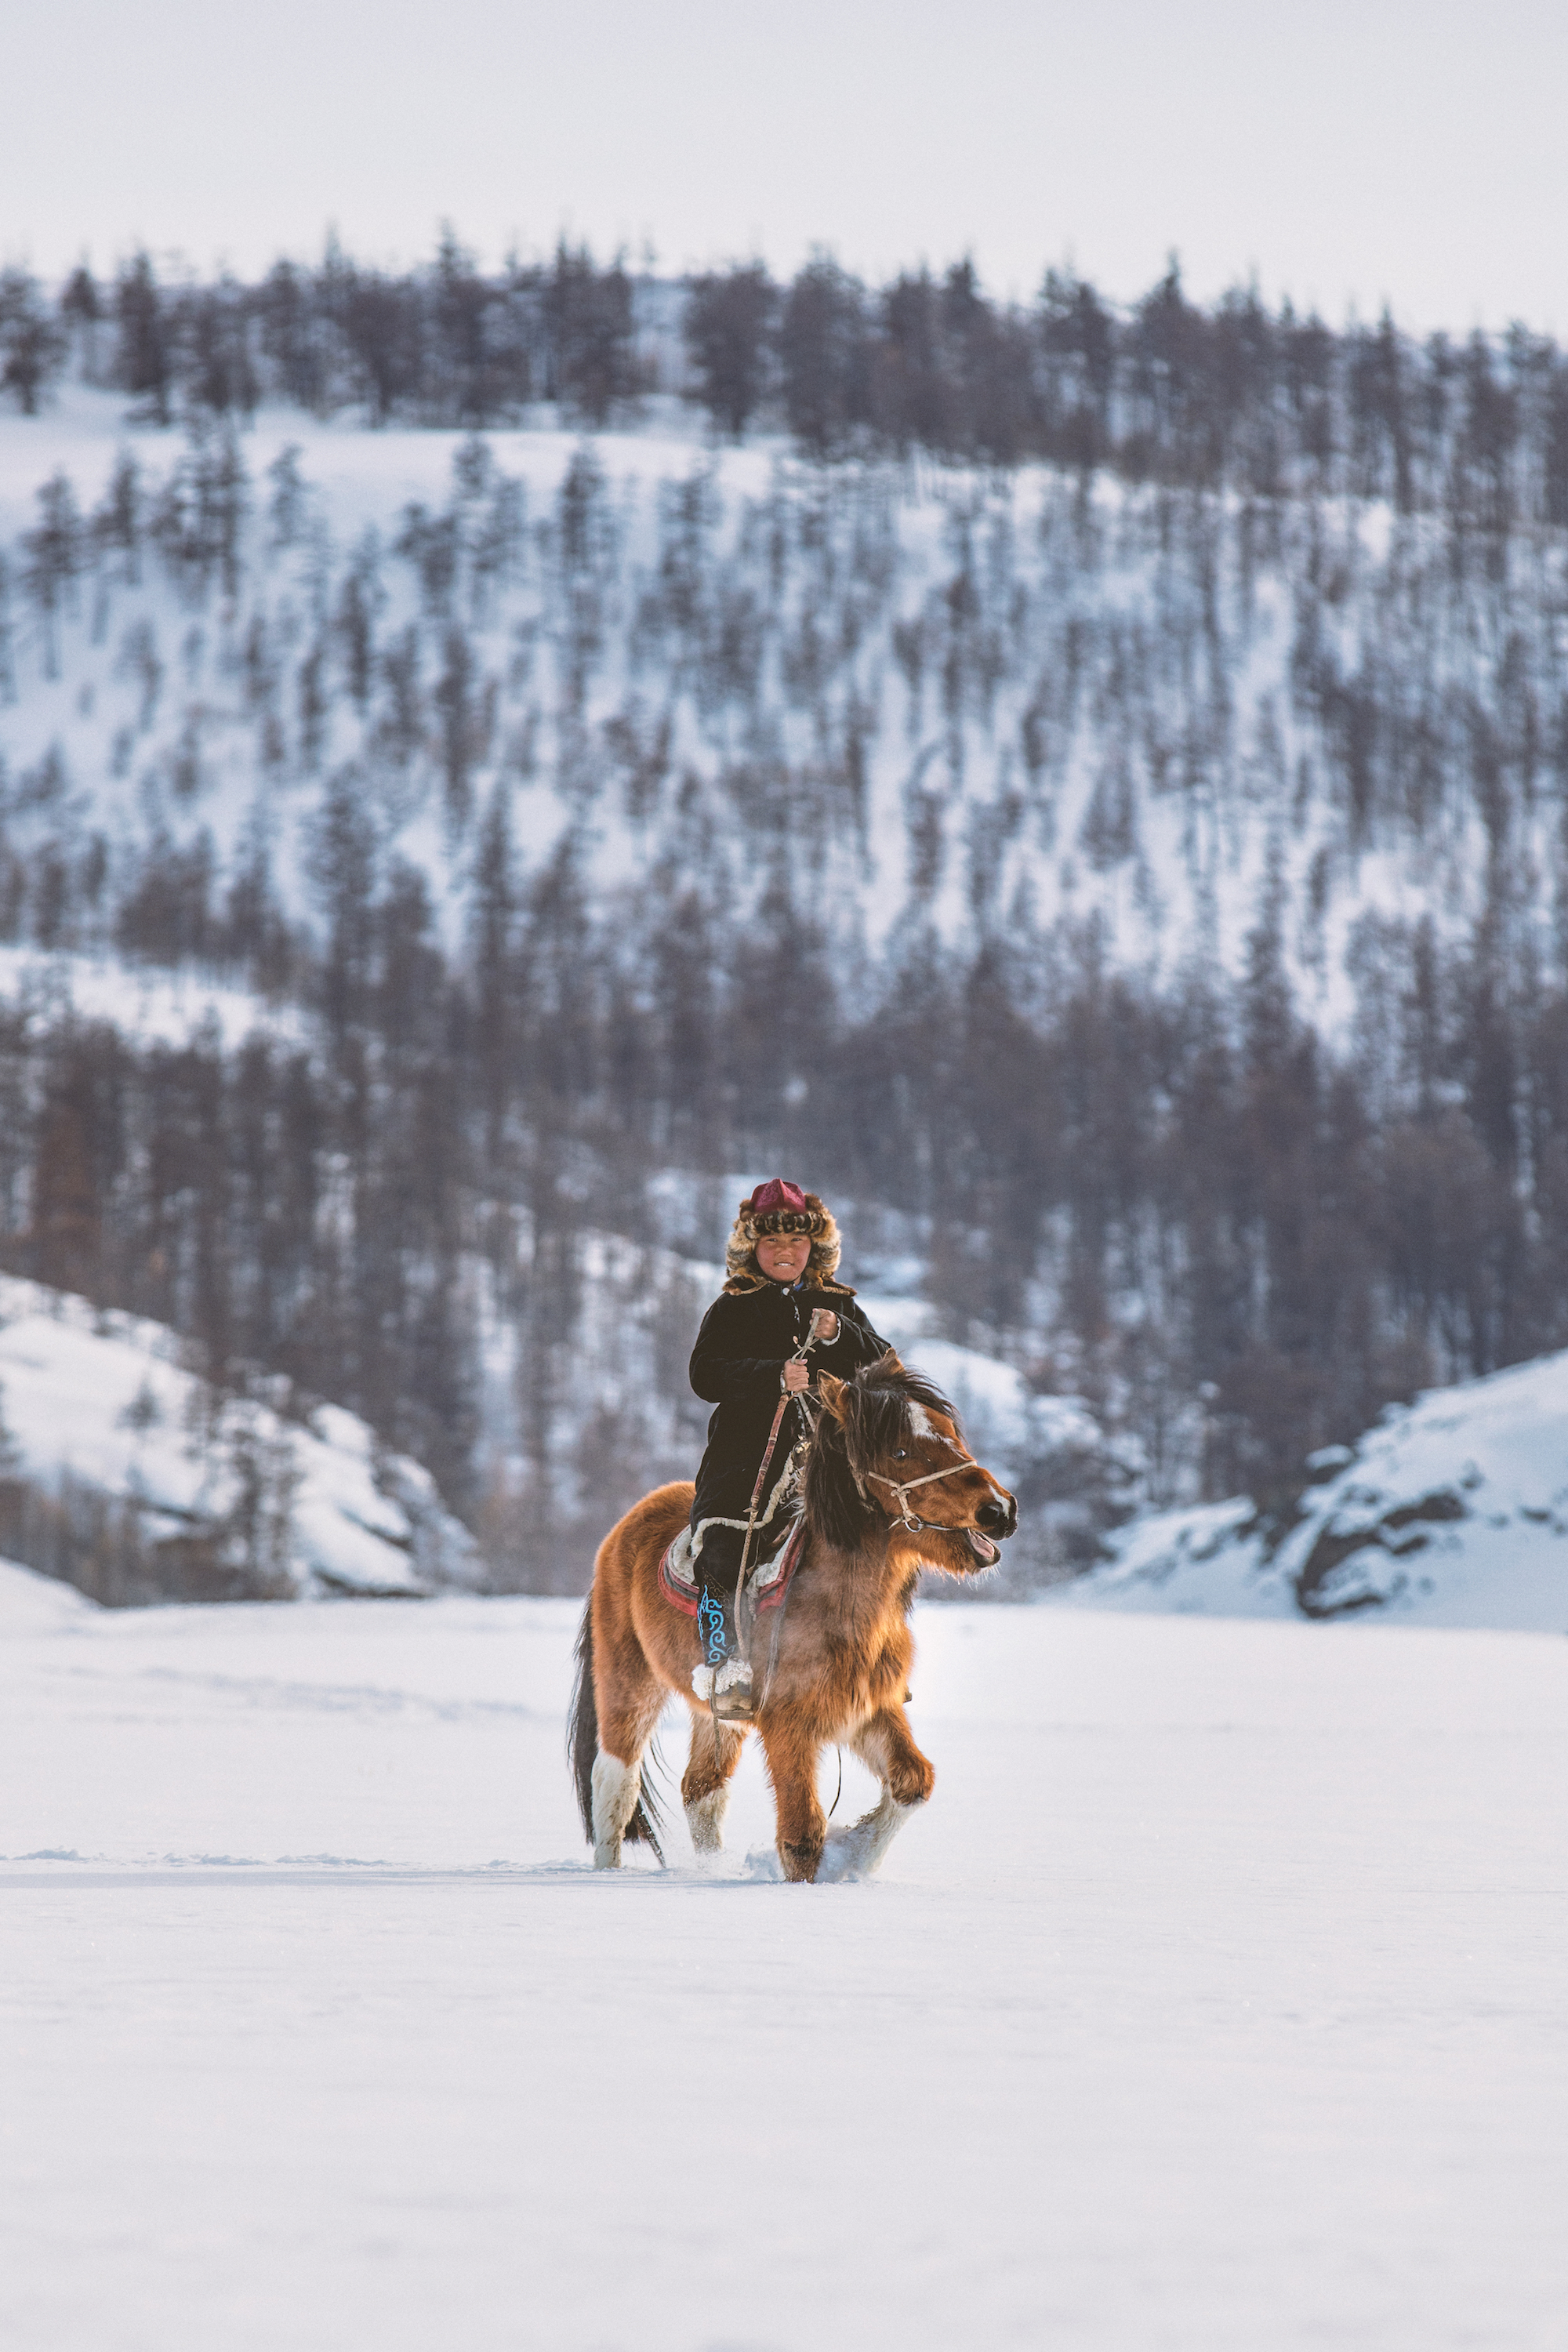 Janibek, a 9-year old Kazakh nomad, winter in the Altai Mountains, Western Mongolia_Boy_Nomad_aAron_Munson.jpg